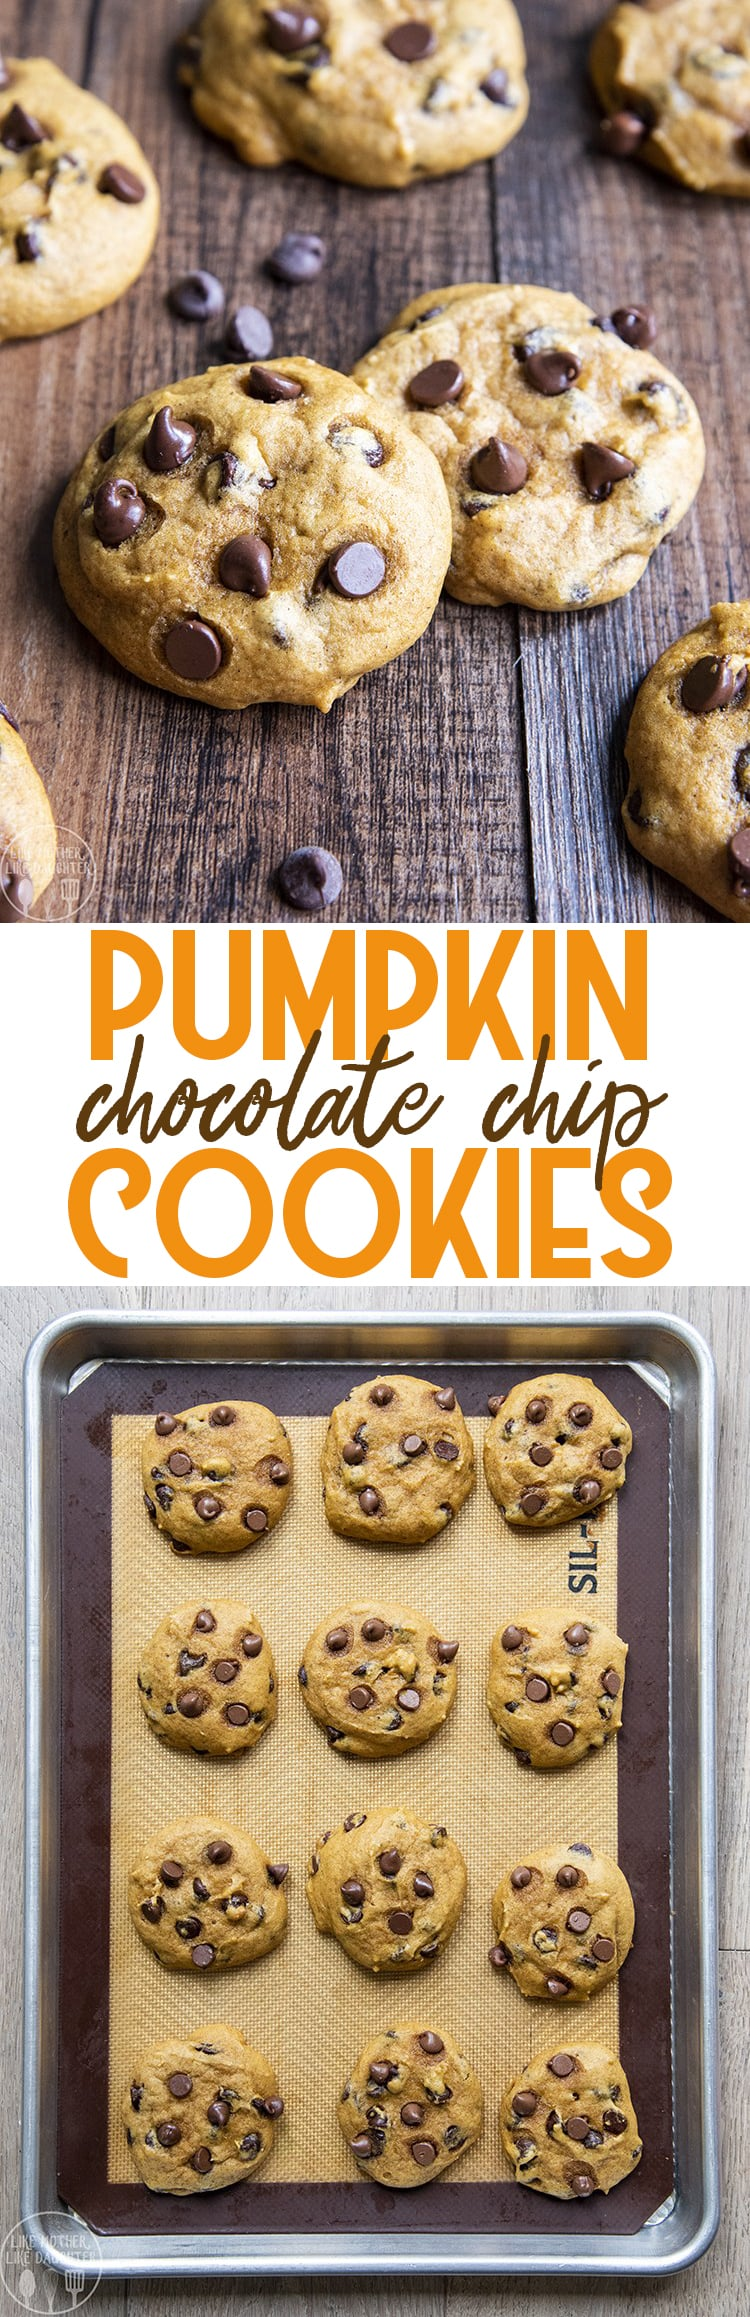 These pumpkin chocolate chip cookies are are soft, moist, and loaded with the perfect pumpkin flavor. They're the best fall cookies.